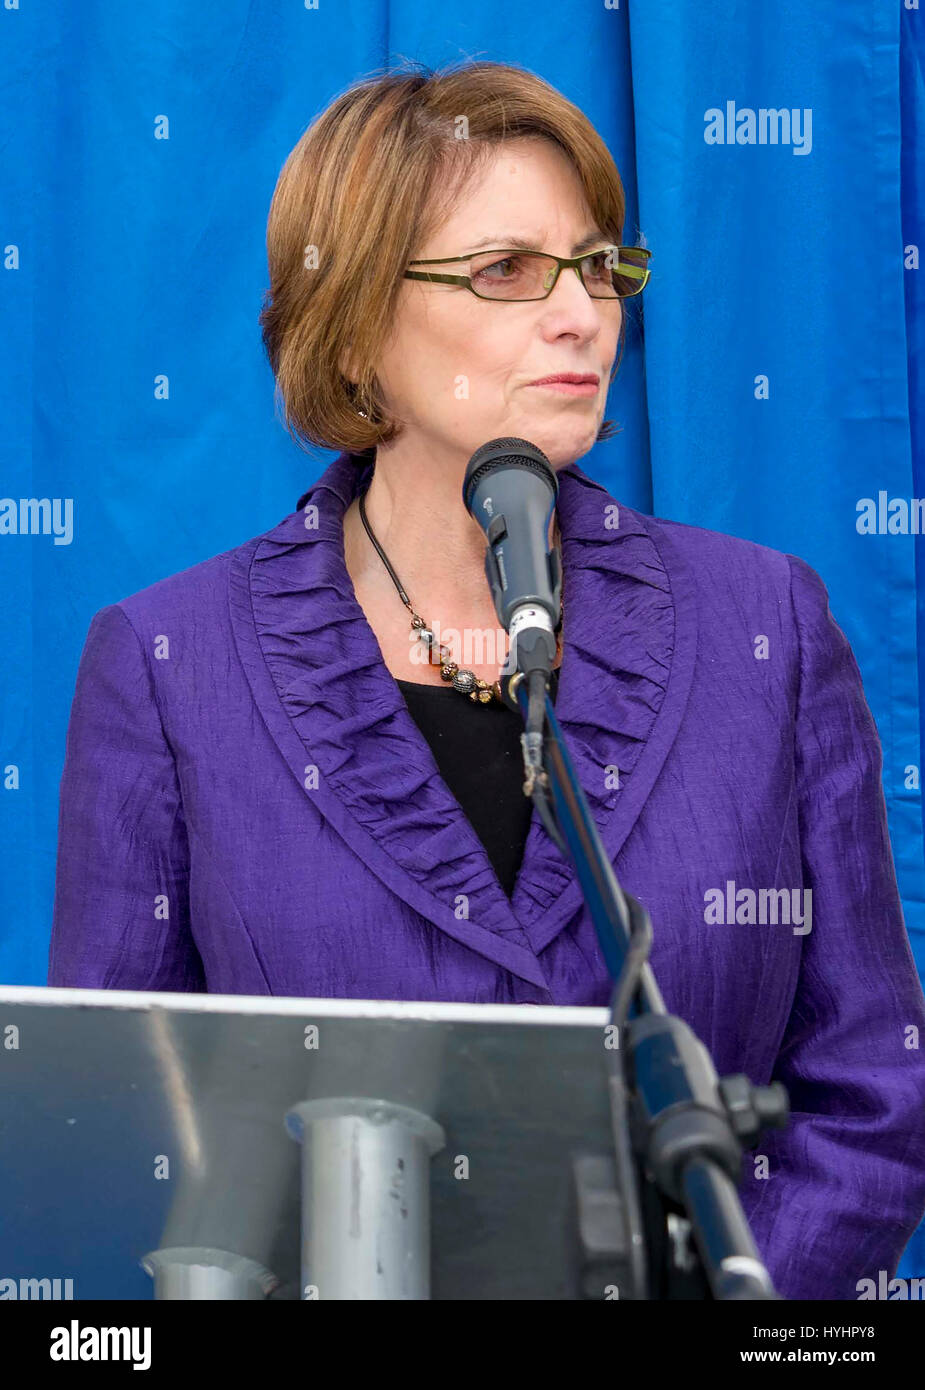 Louise Joyce Ellman is a British Labour Co-operative politician who has been the Member of Parliament for Liverpool - Stock Image